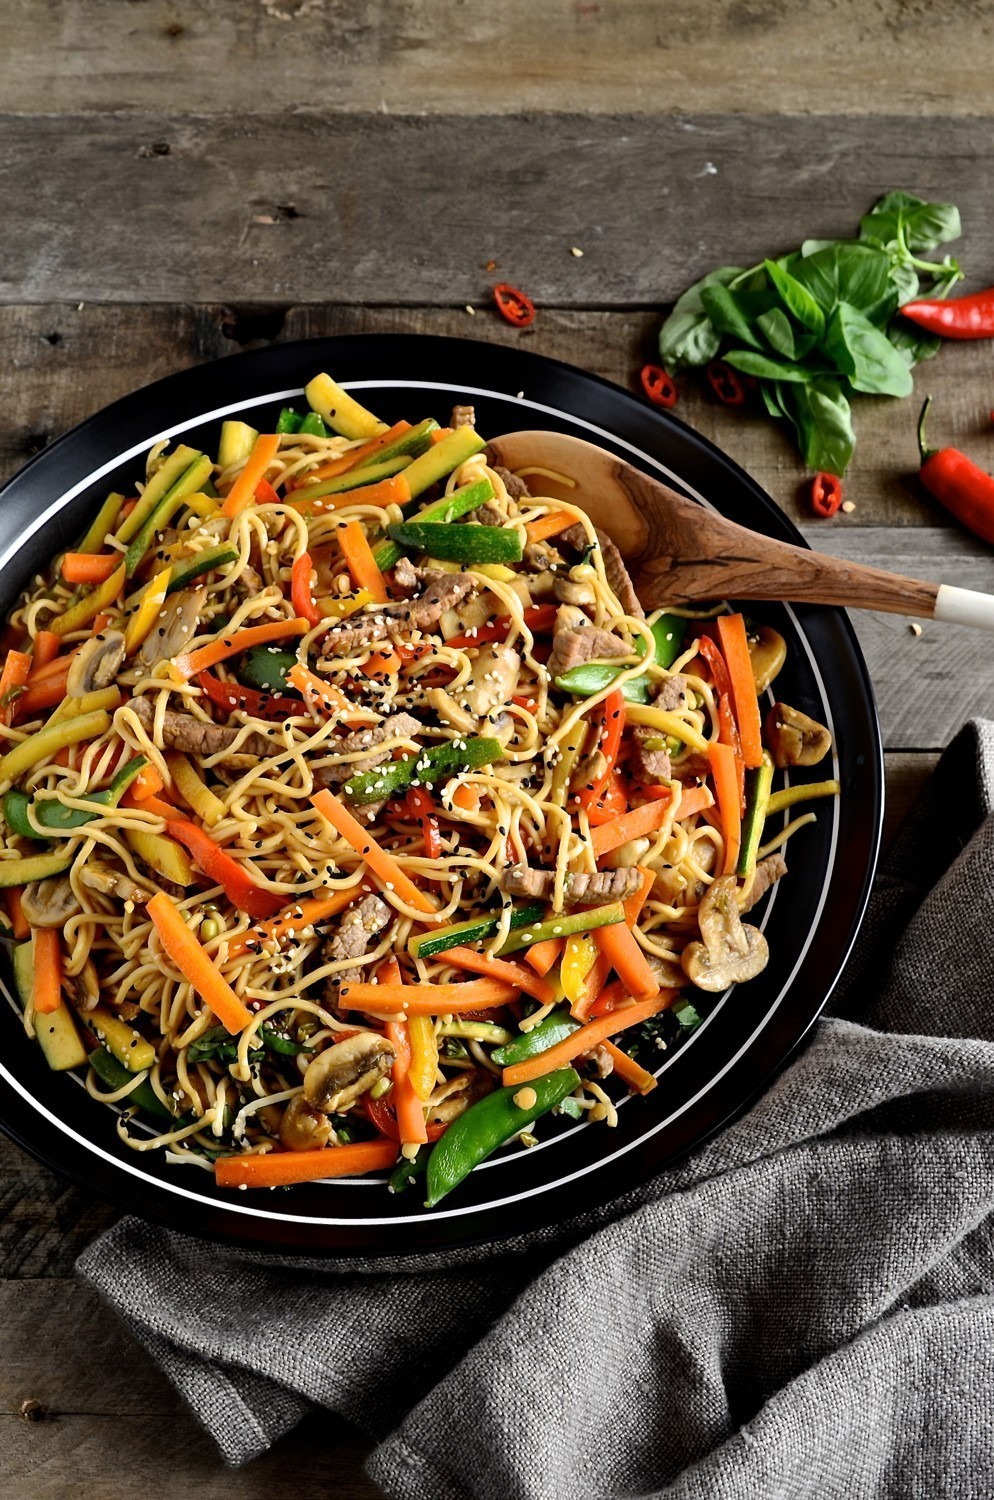 Korean Beef Stir Fry With Egg Noodles Bibbys Kitchen Recipes